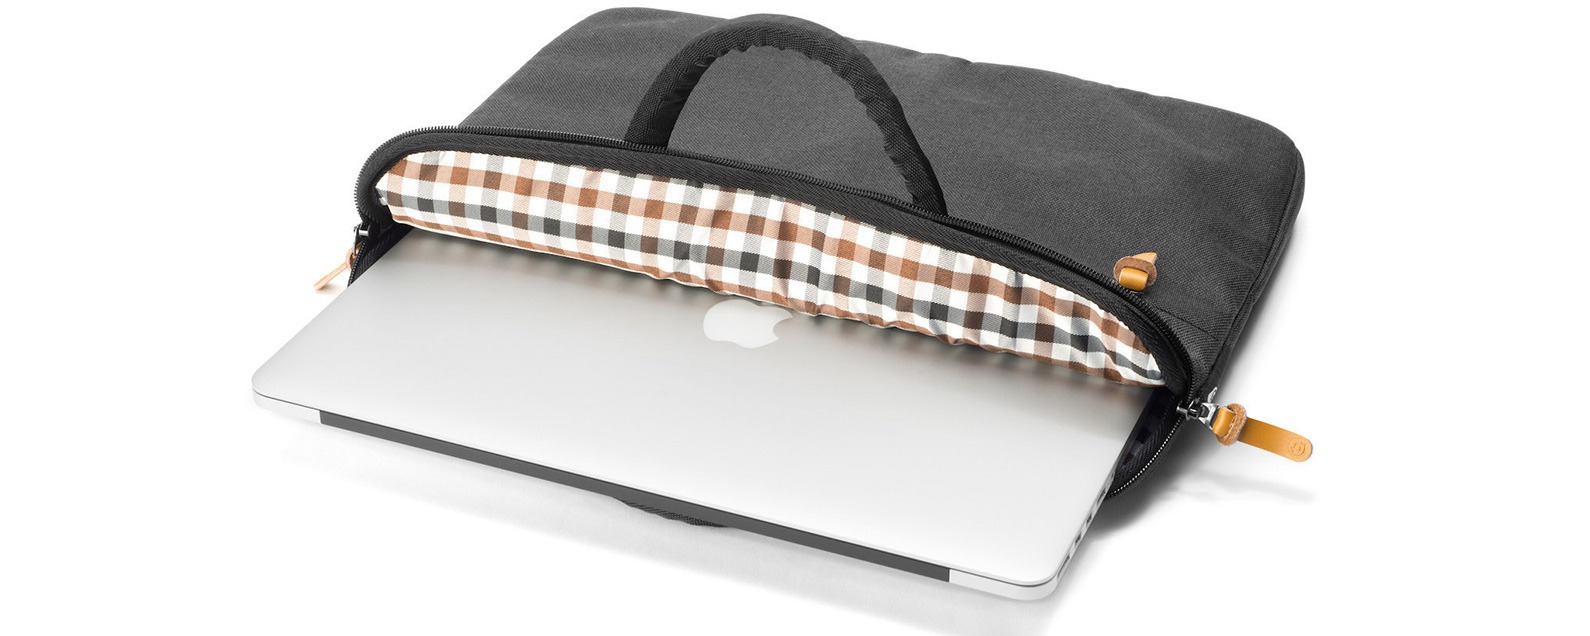 Review: Superslim Laptop Bag from Booq